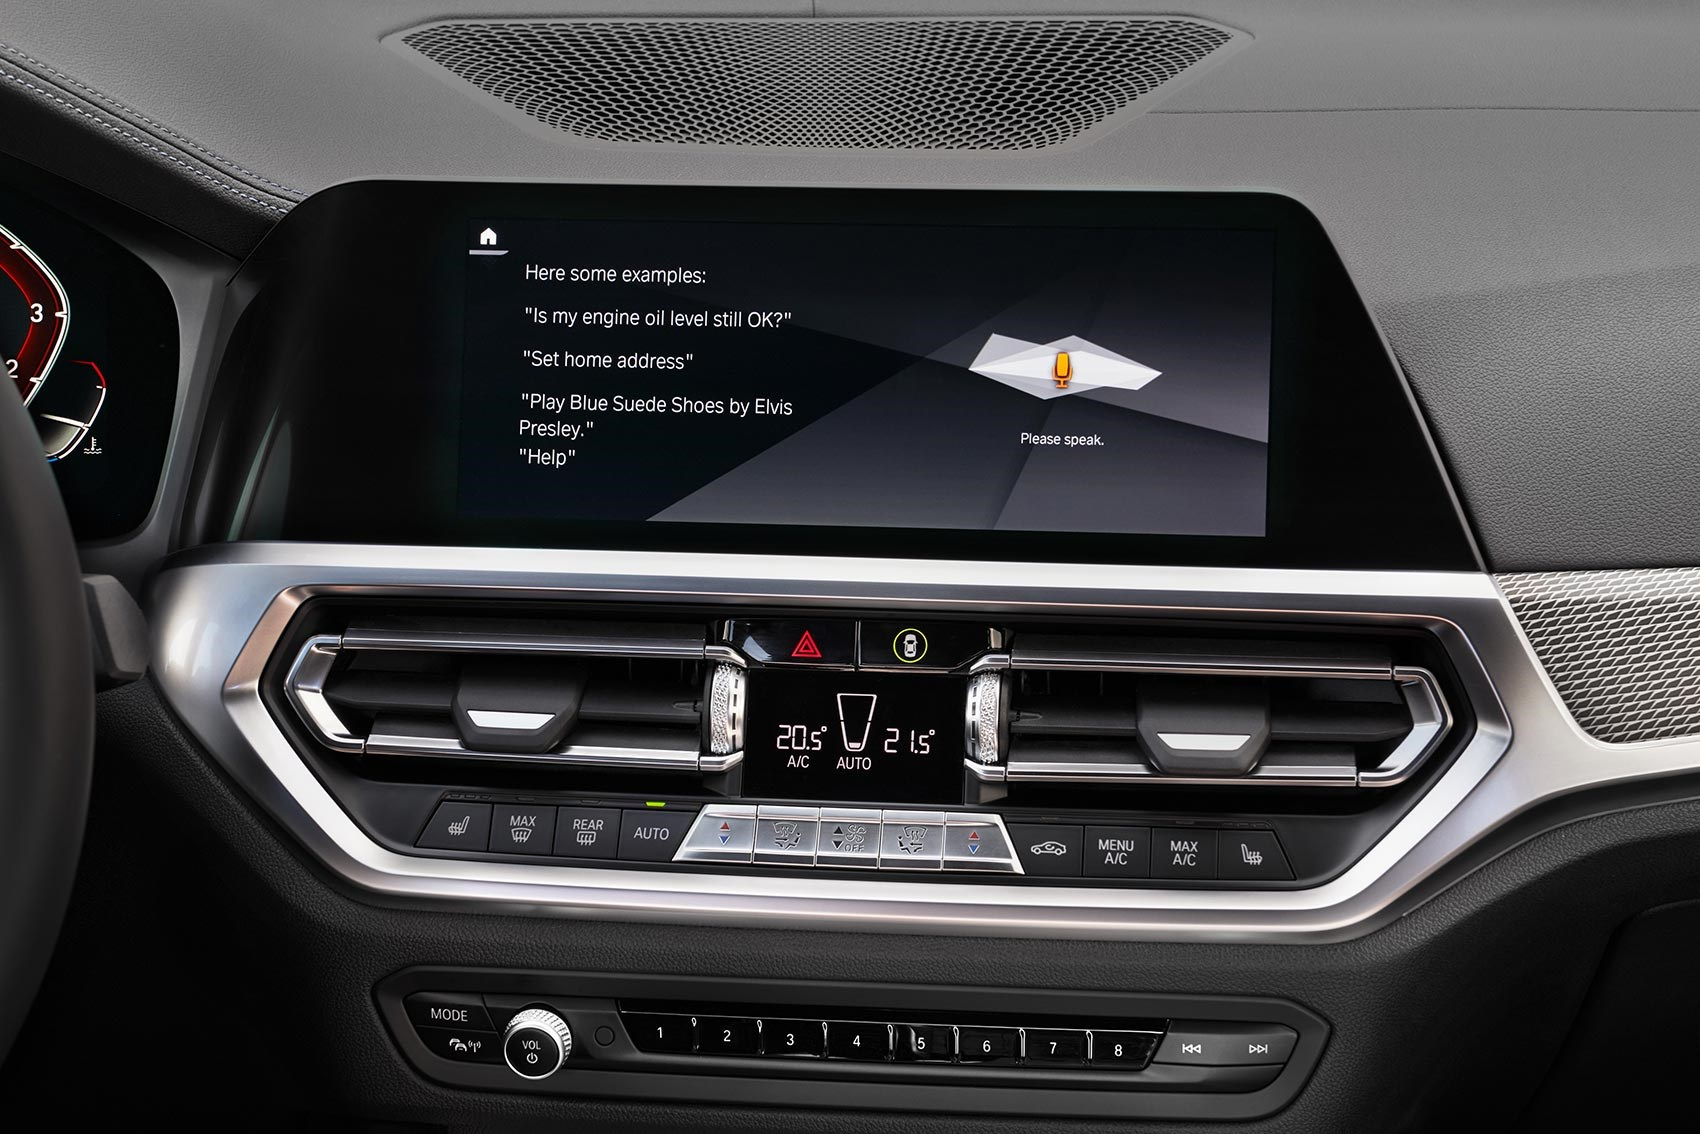 BMW Personal Assistant lets you talk to your 3-series